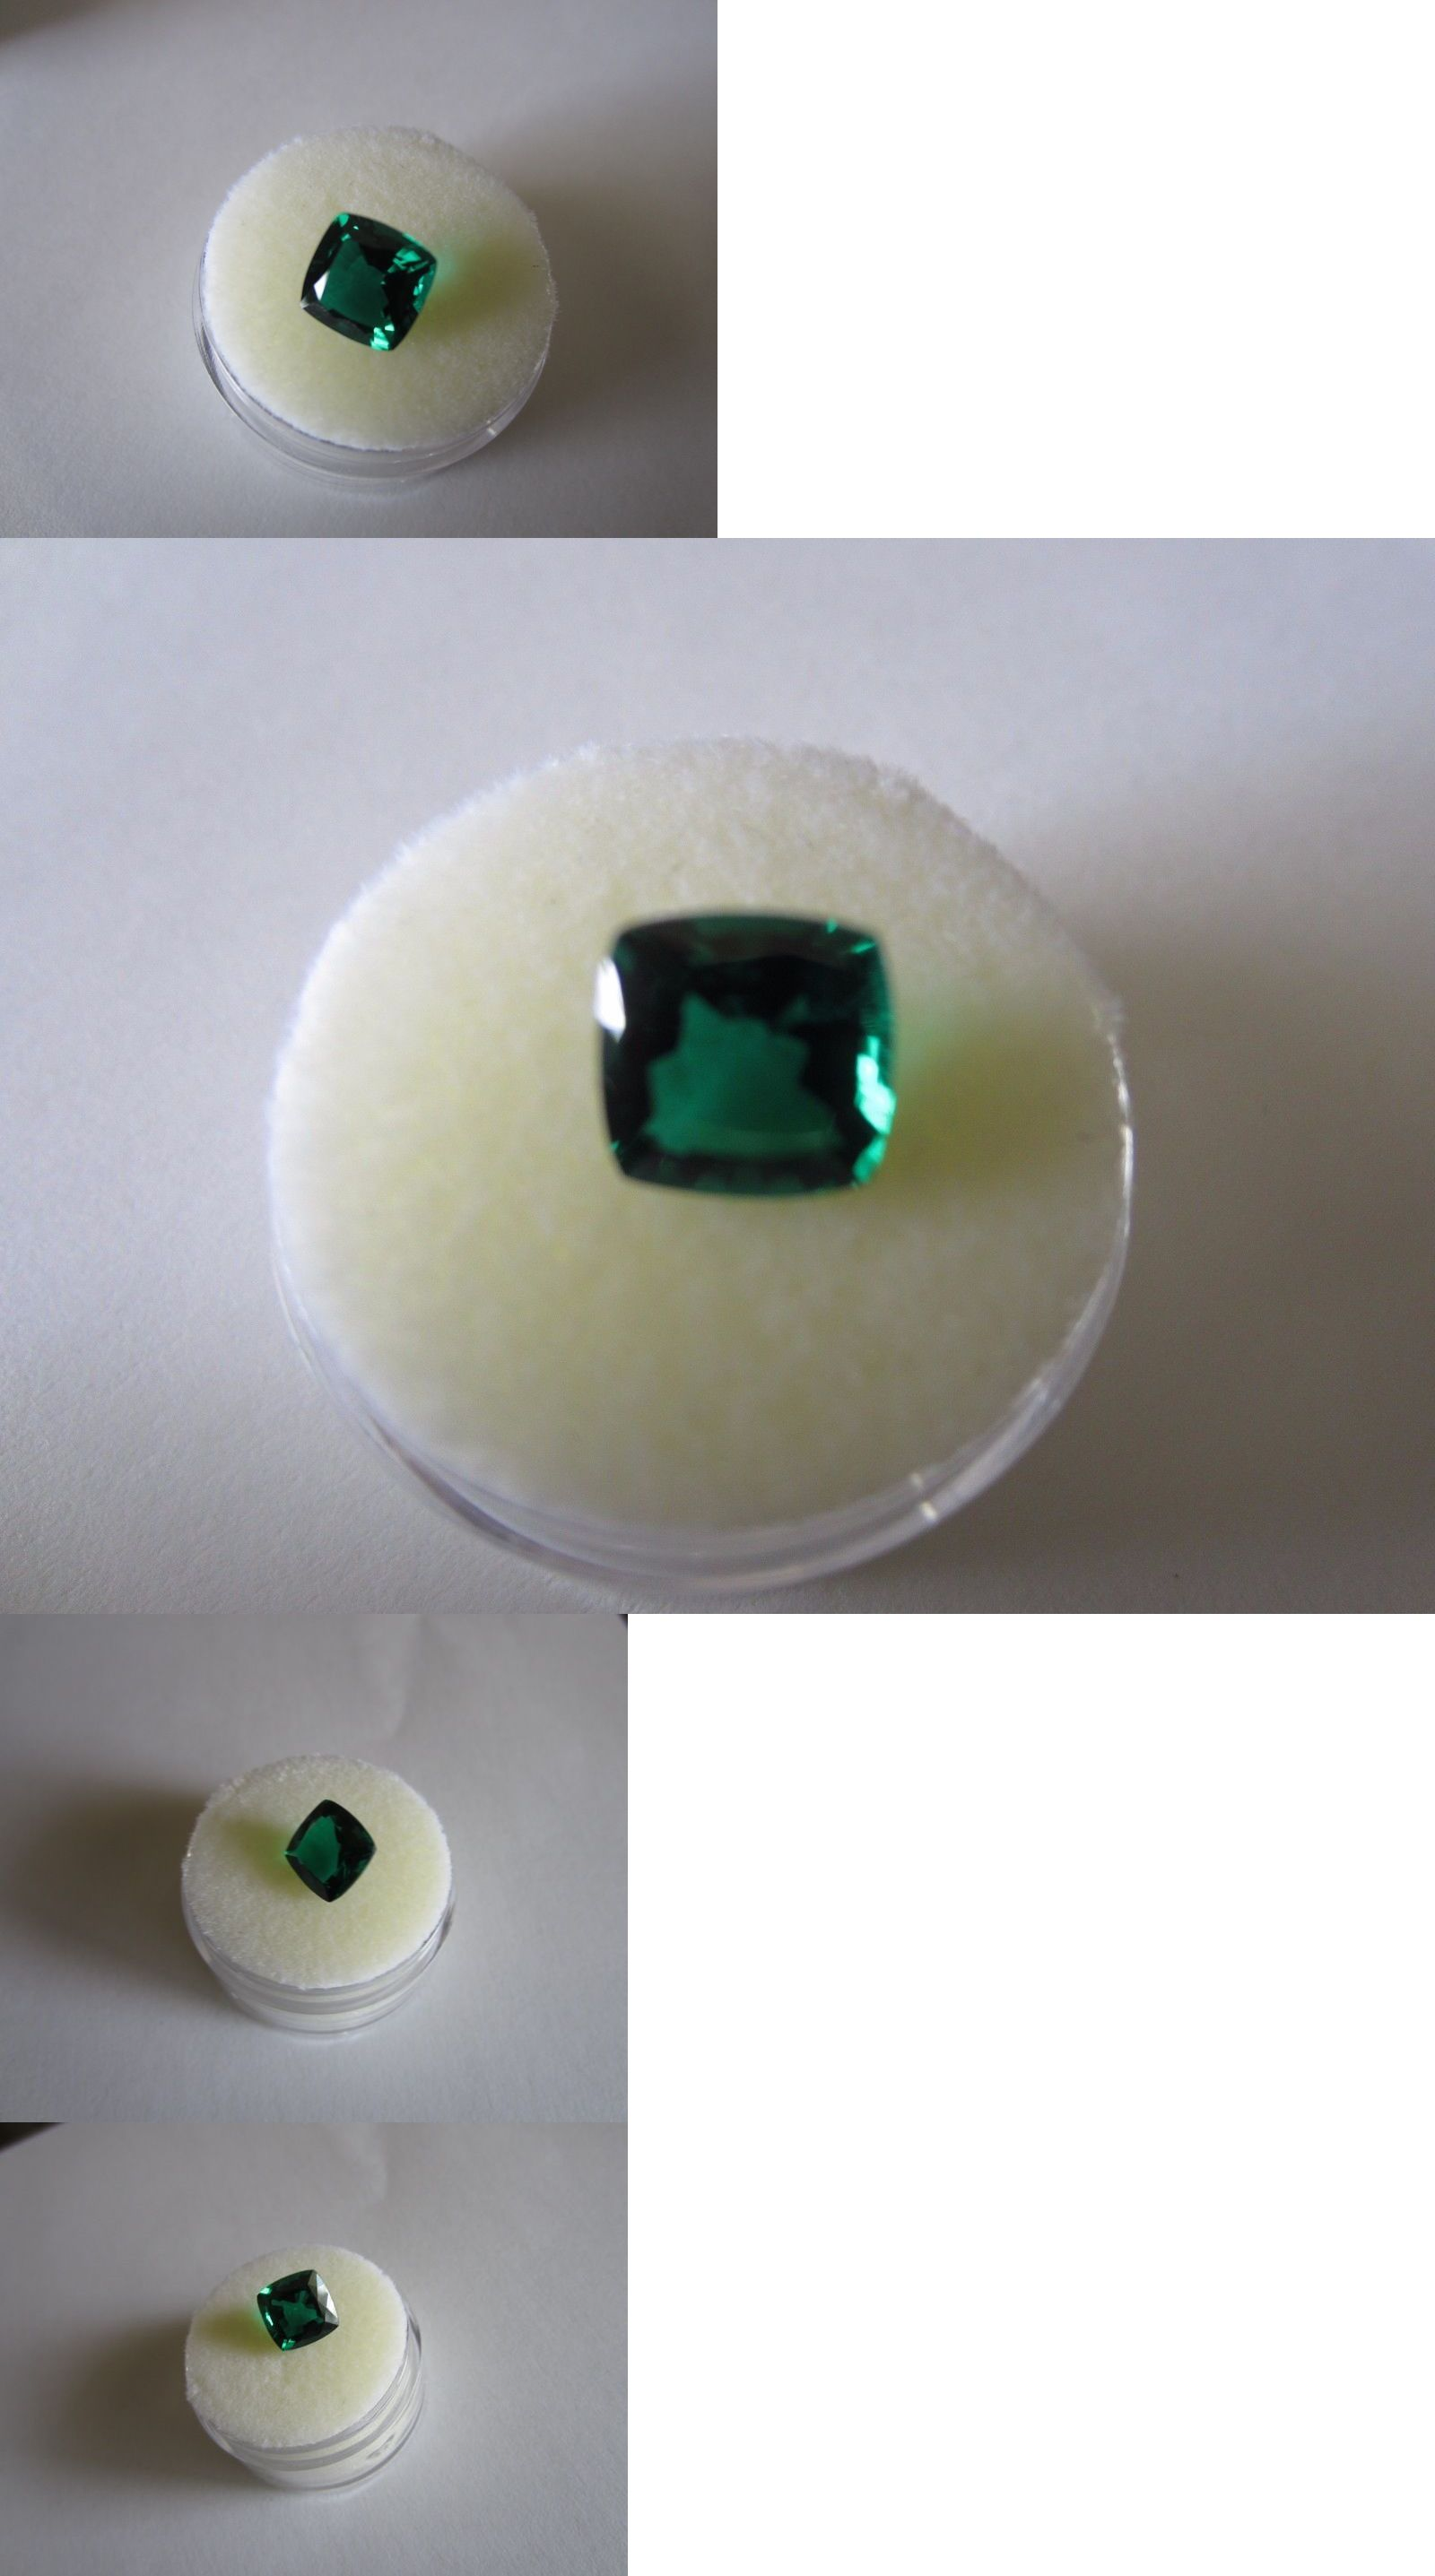 products gems cushion emerald grown chatham brilliance fire lab